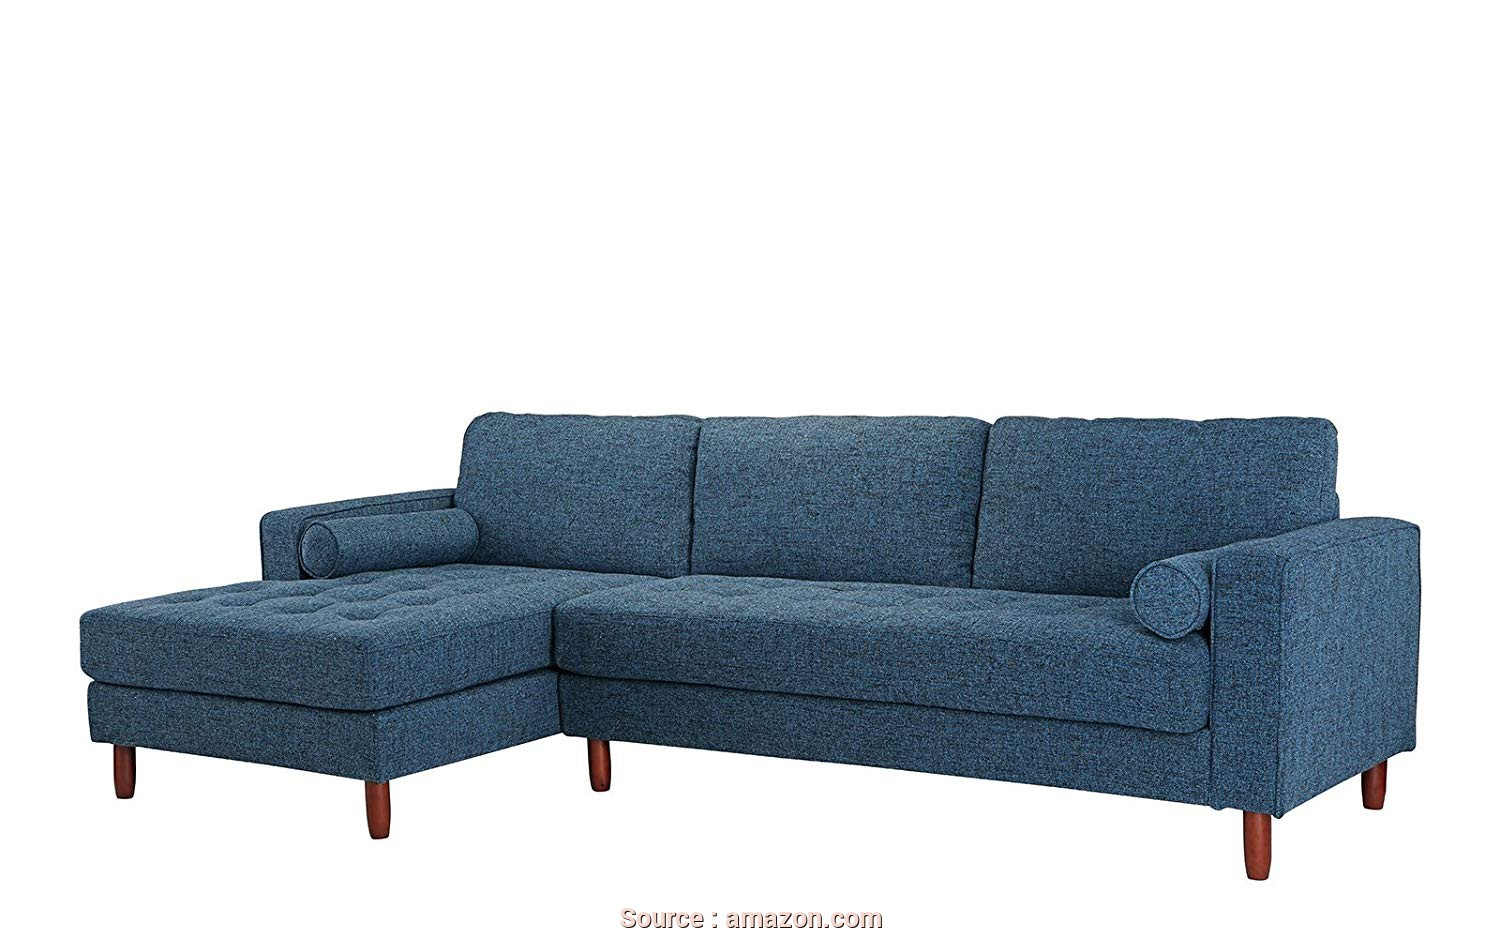 Divano Chaise Longue 180, Eccezionale Amazon.Com: DIVANO ROMA FURNITURE Mid-Century Modern Tufted Fabric Sectional Sofa, L-Shape Couch With Extra Wide Chaise Lounge (Dark Blue): Kitchen & Dining